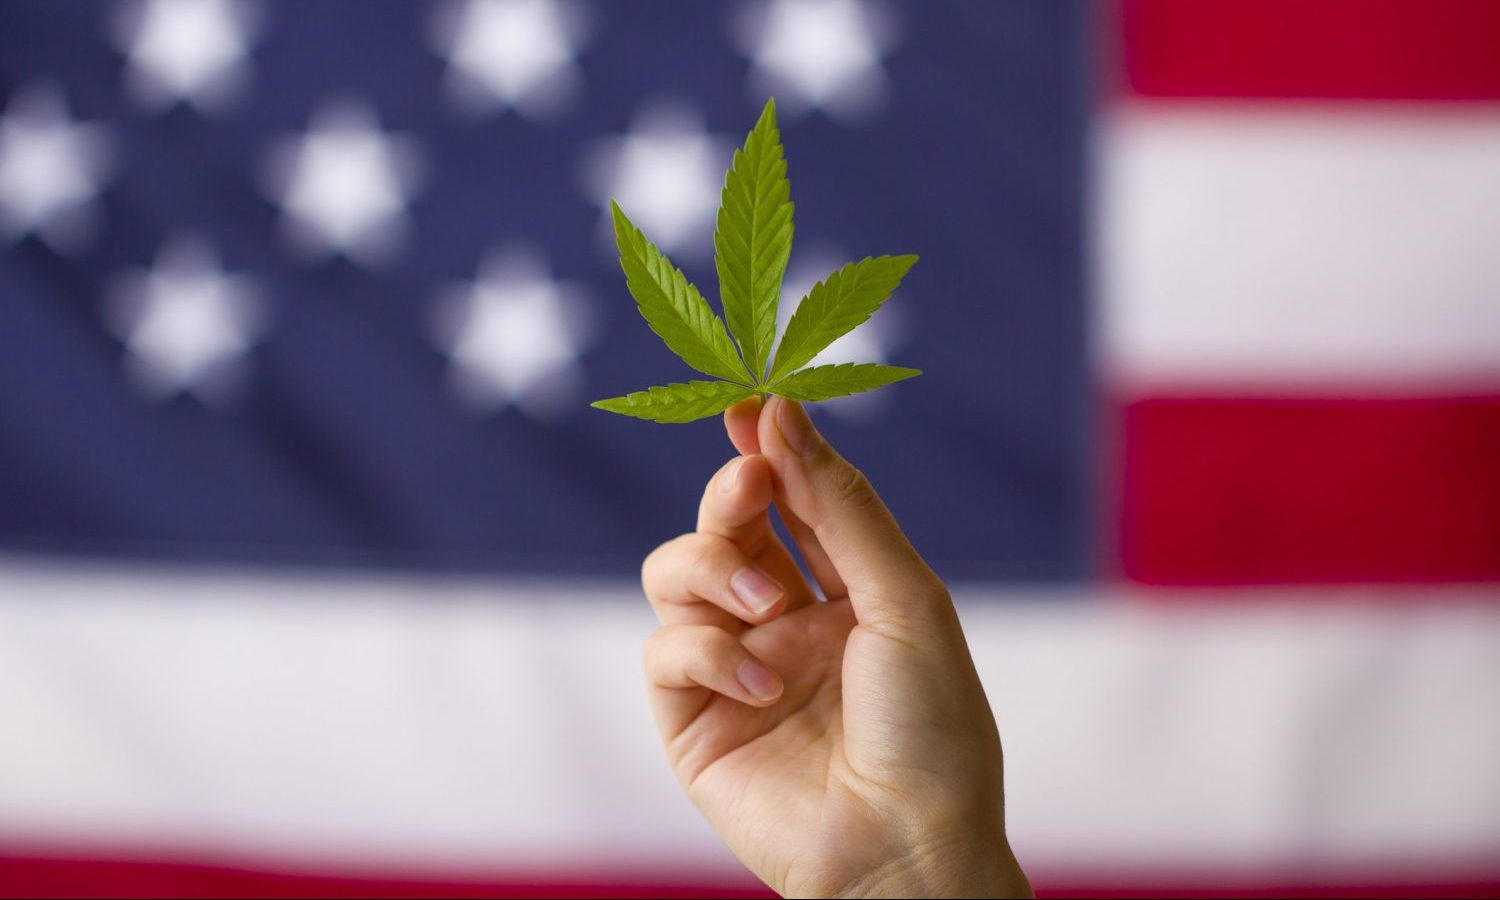 could marijuana legalization unite a divided country